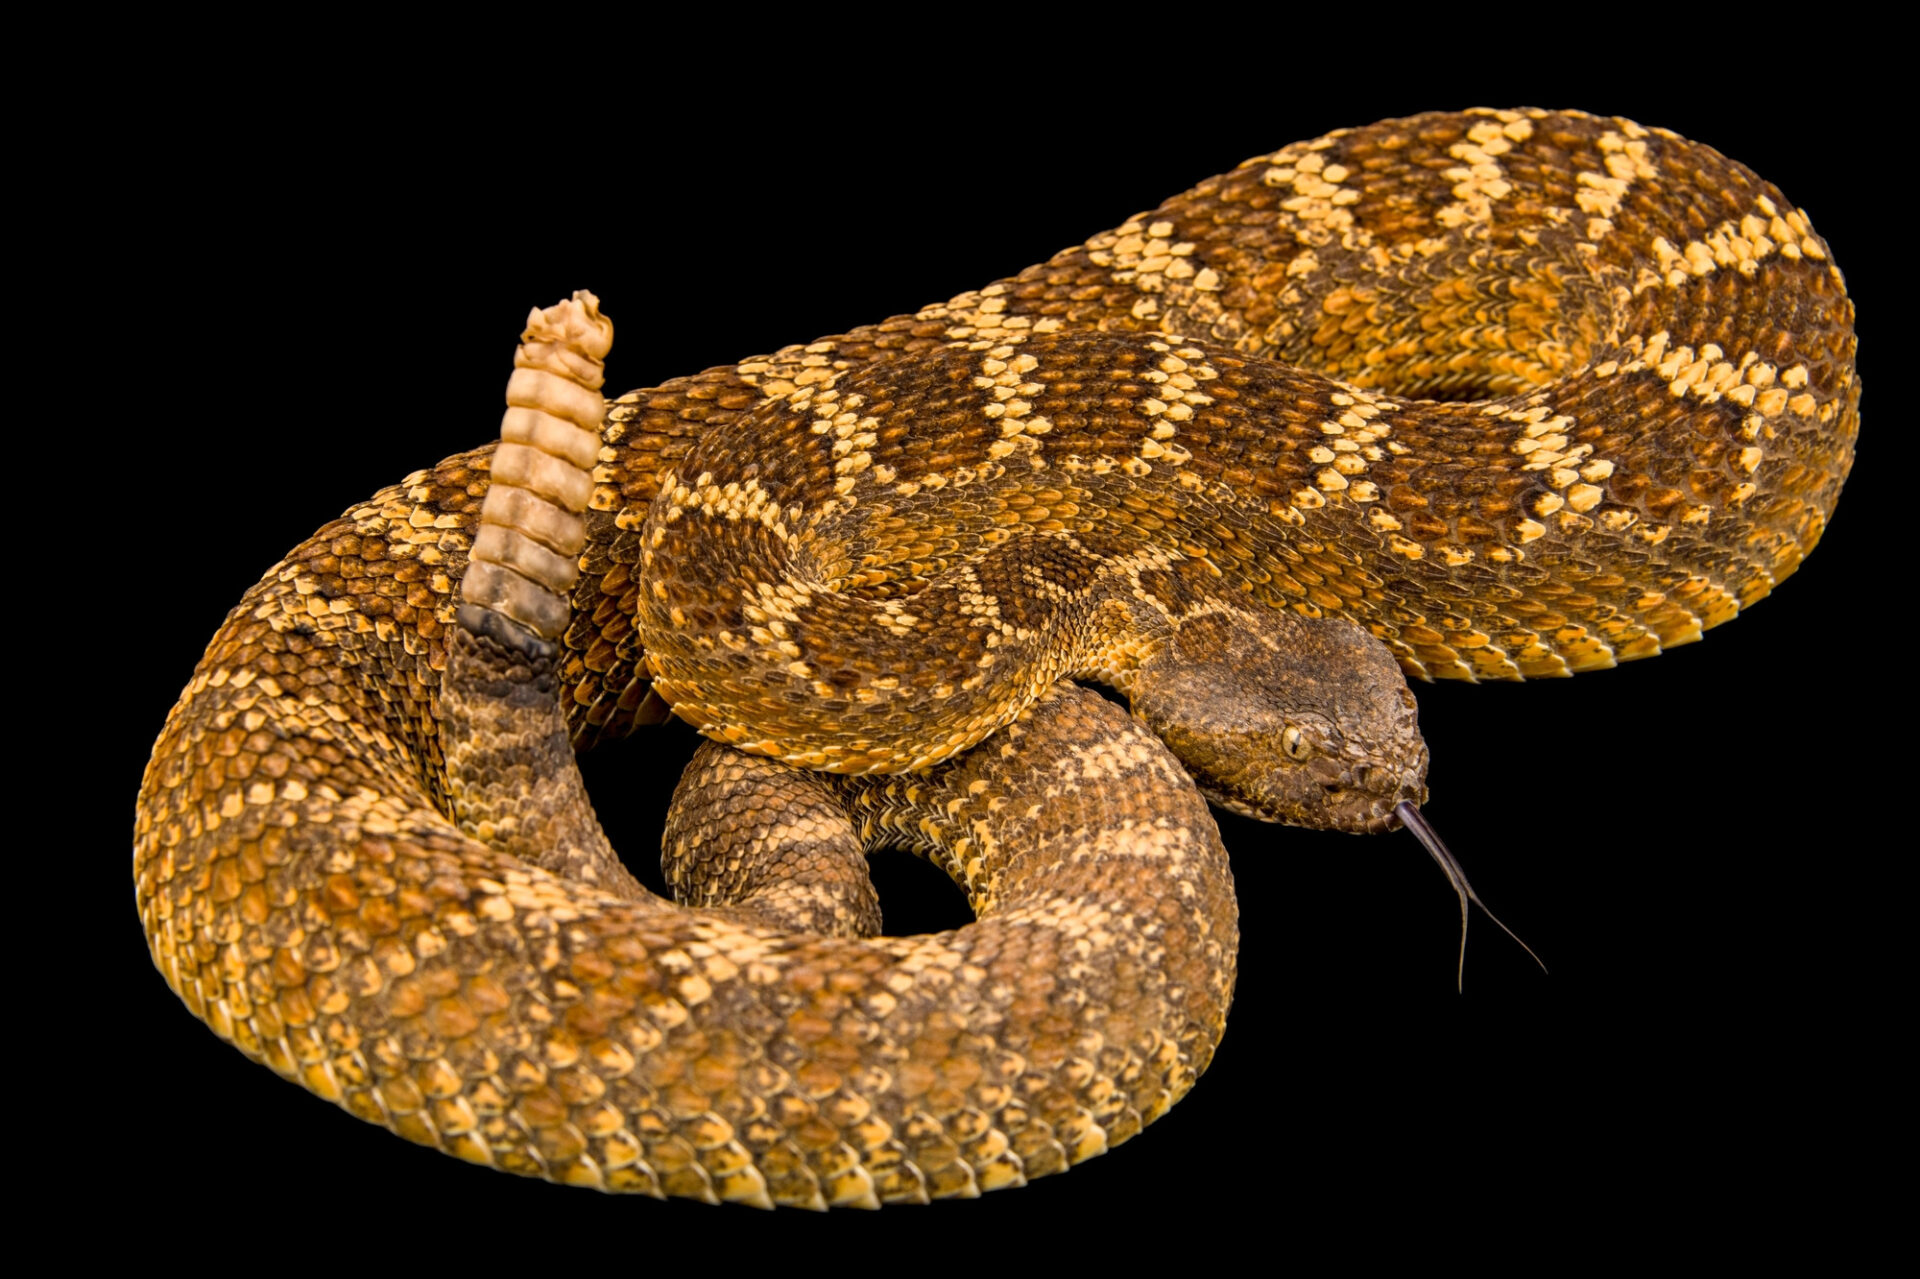 Photo: A Cerbat Mountains rattlesnake (Crotalus oreganus hualapaiensis) at the American International Rattlesnake Museum in Albuquerque, NM.